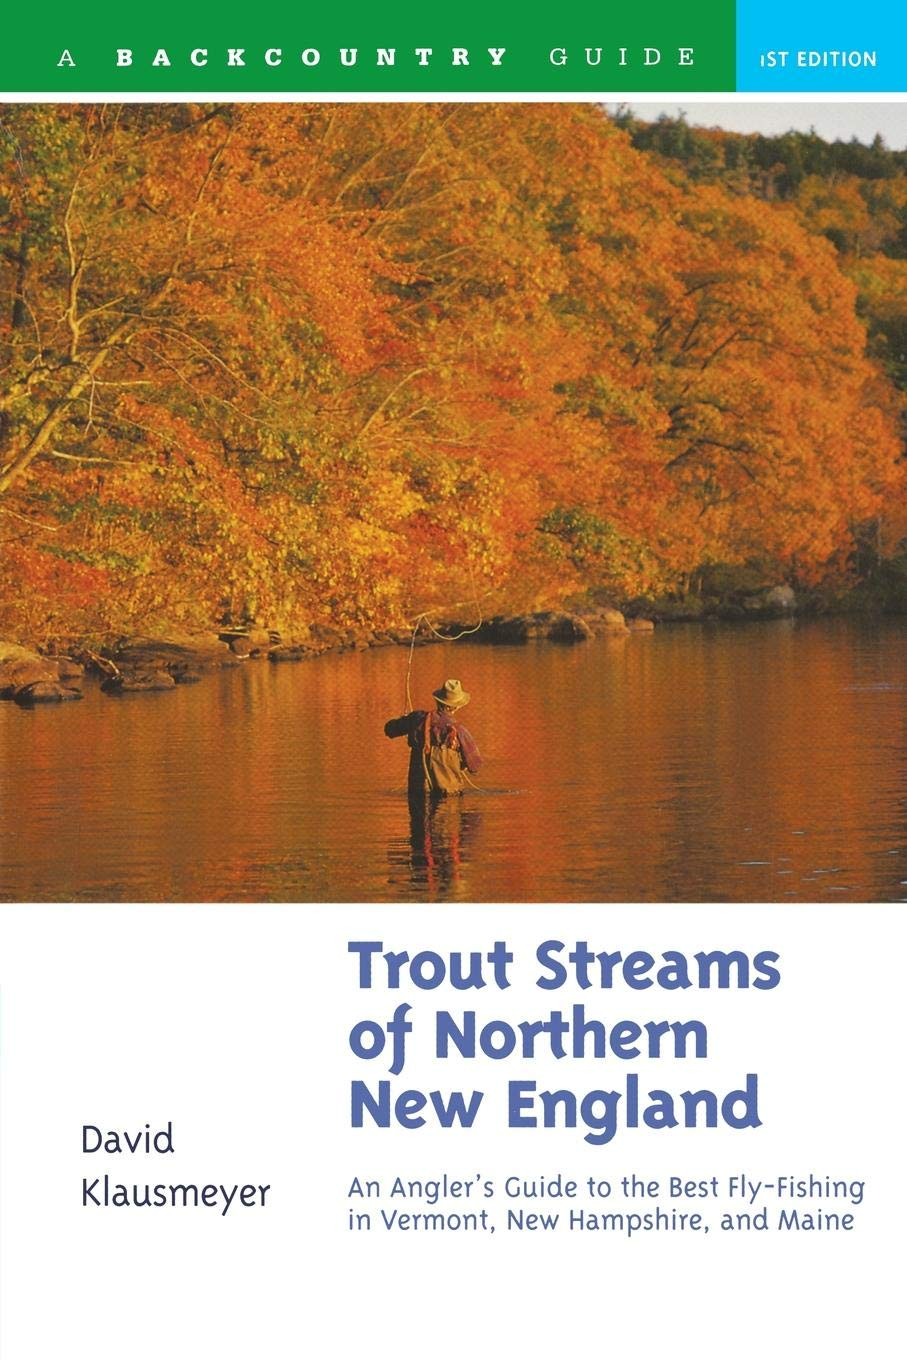 Trout Streams of Northern New England: A Guide to the Best